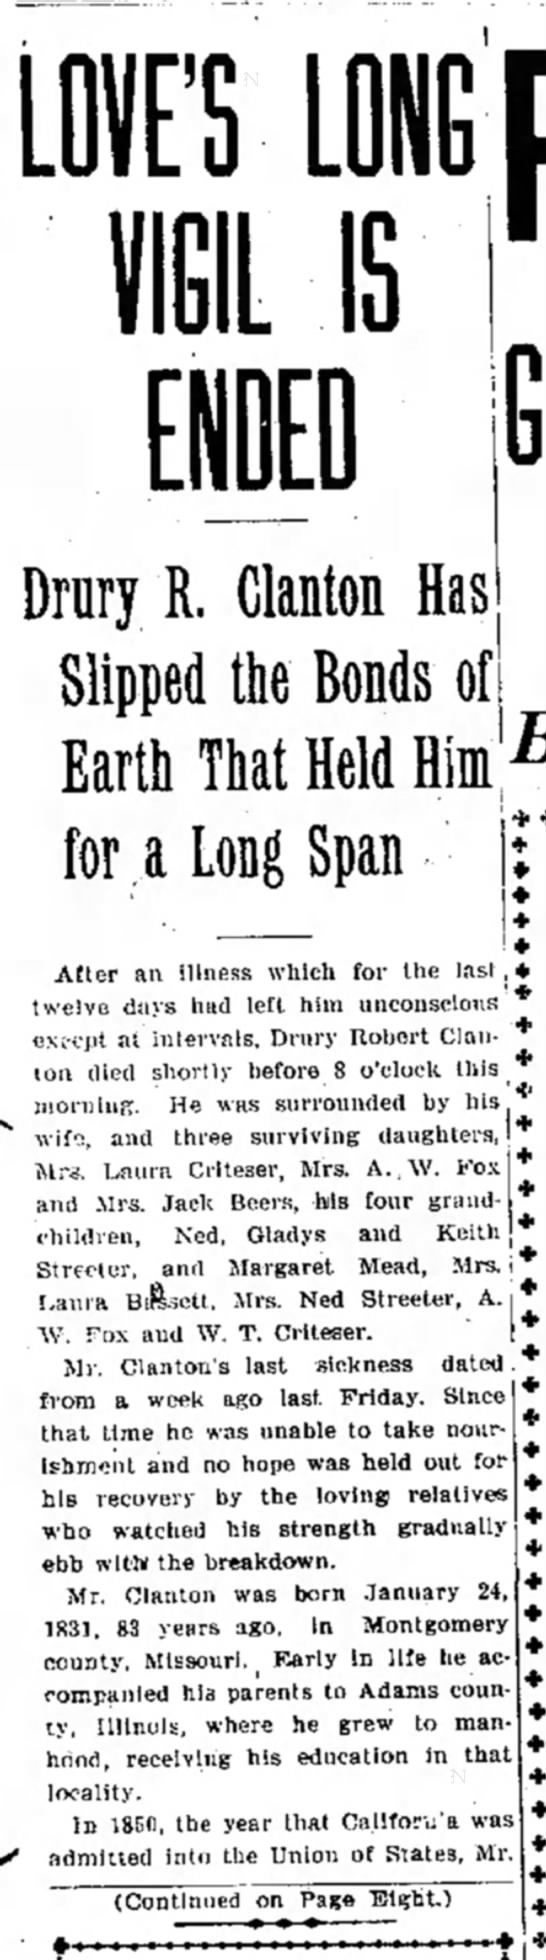 Drewry Clanton Obit 12 Aug 1914 Page 1, Col 1 and Pg 8, Col 3 - Drury R. Clanton Has Slipped the Bonds of Earth...